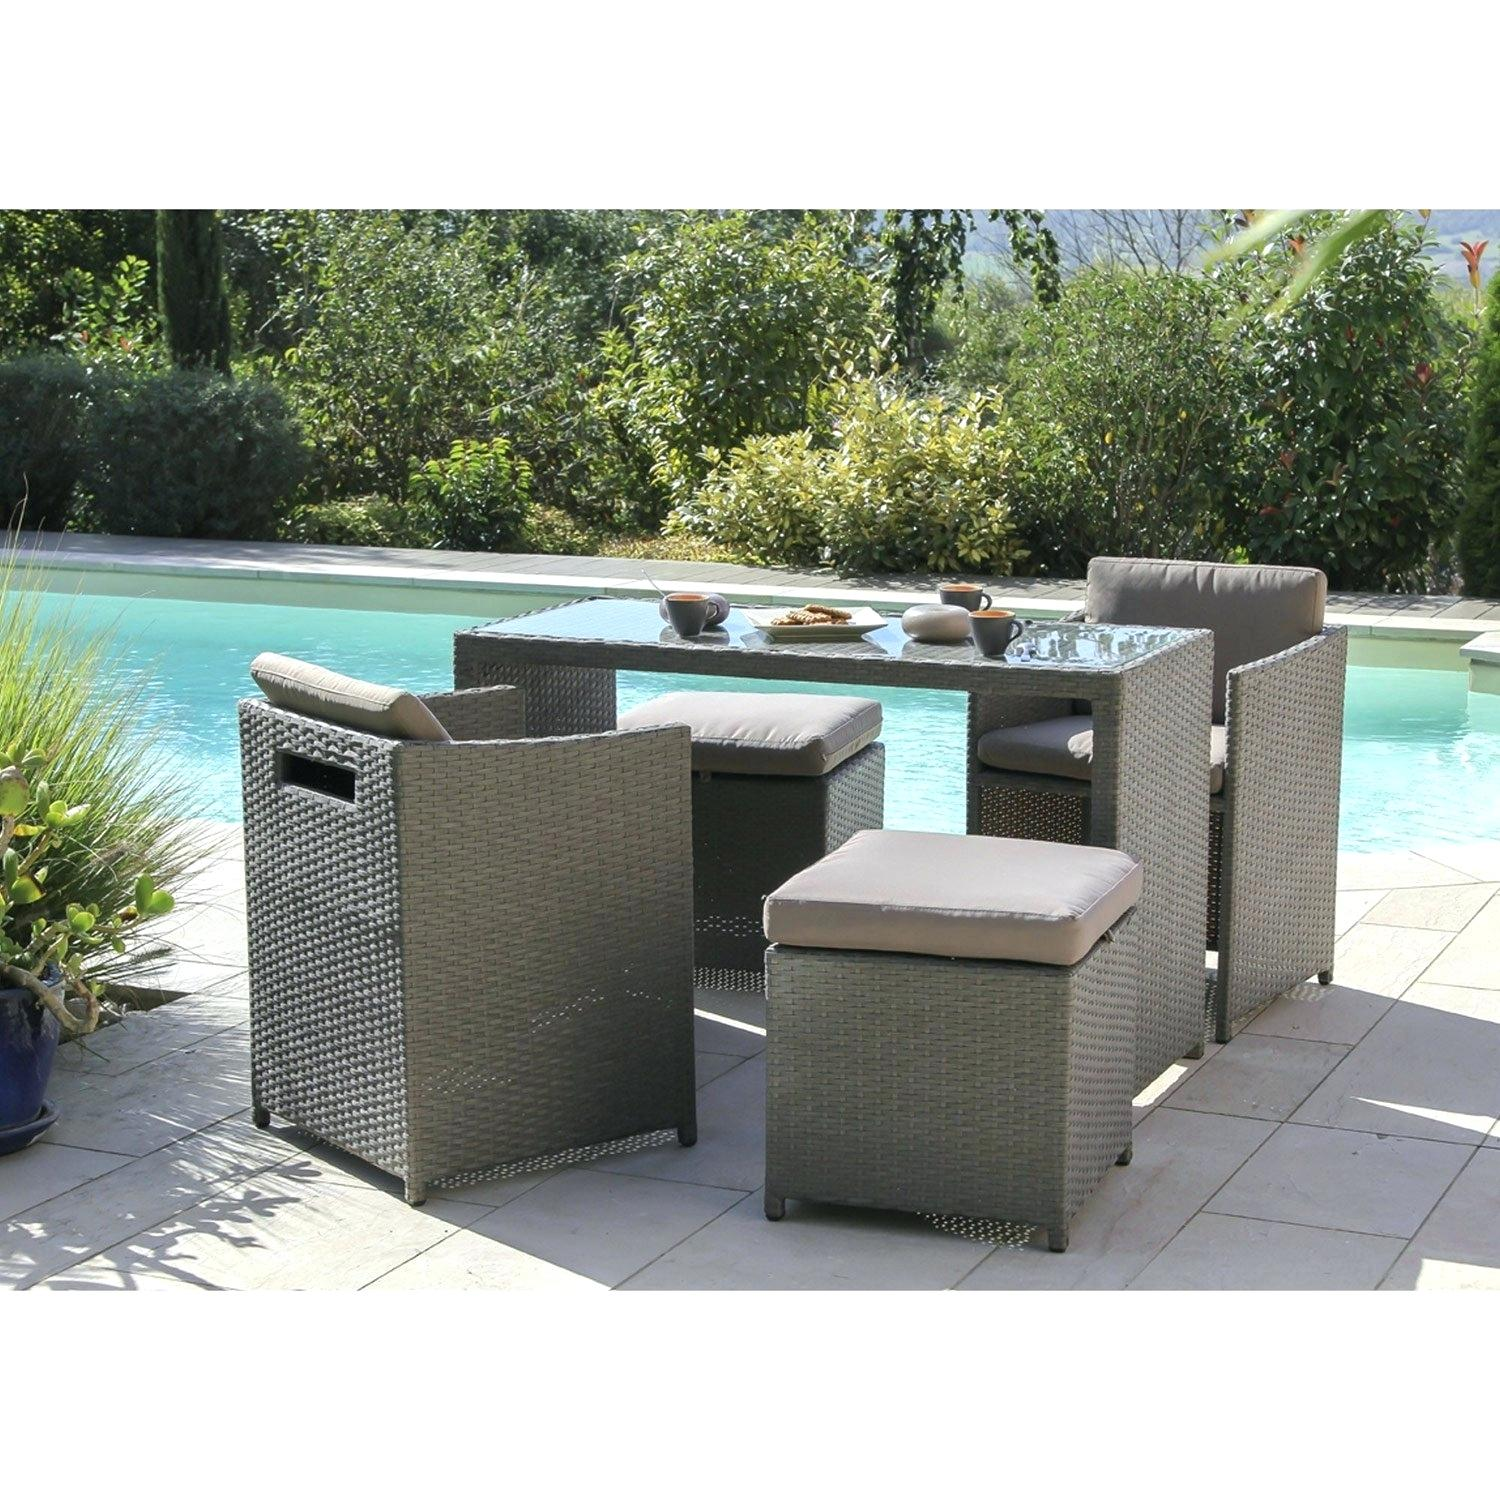 salon de jardin bas alinea jardin piscine et cabane. Black Bedroom Furniture Sets. Home Design Ideas